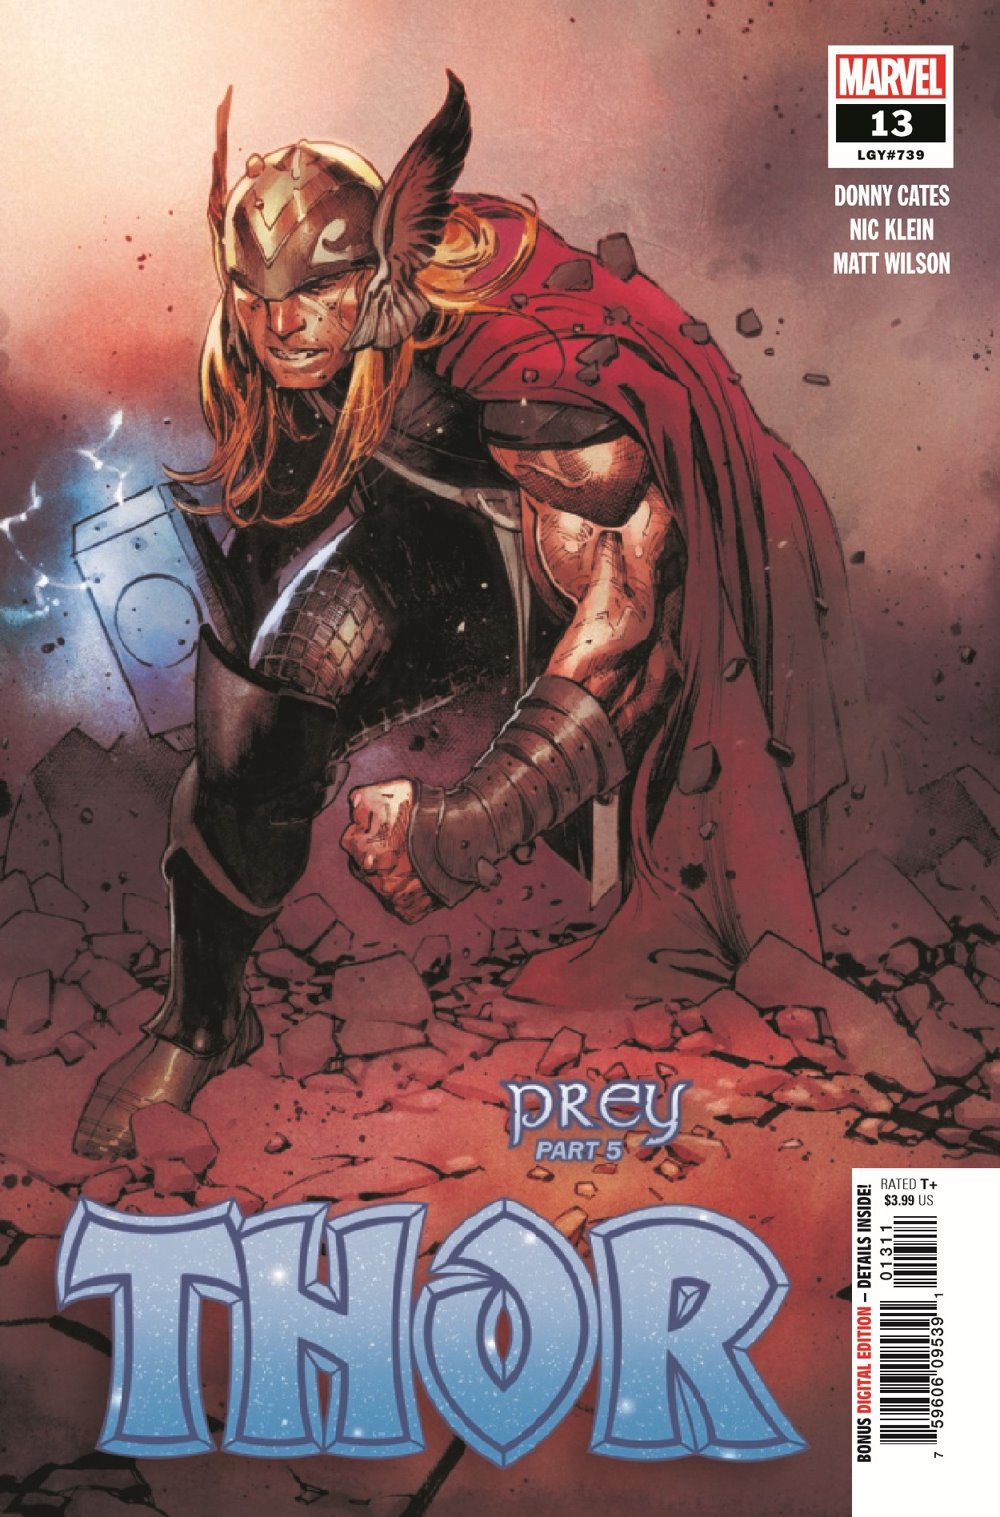 THOR2020013_Preview-1 ComicList Previews: THOR #13